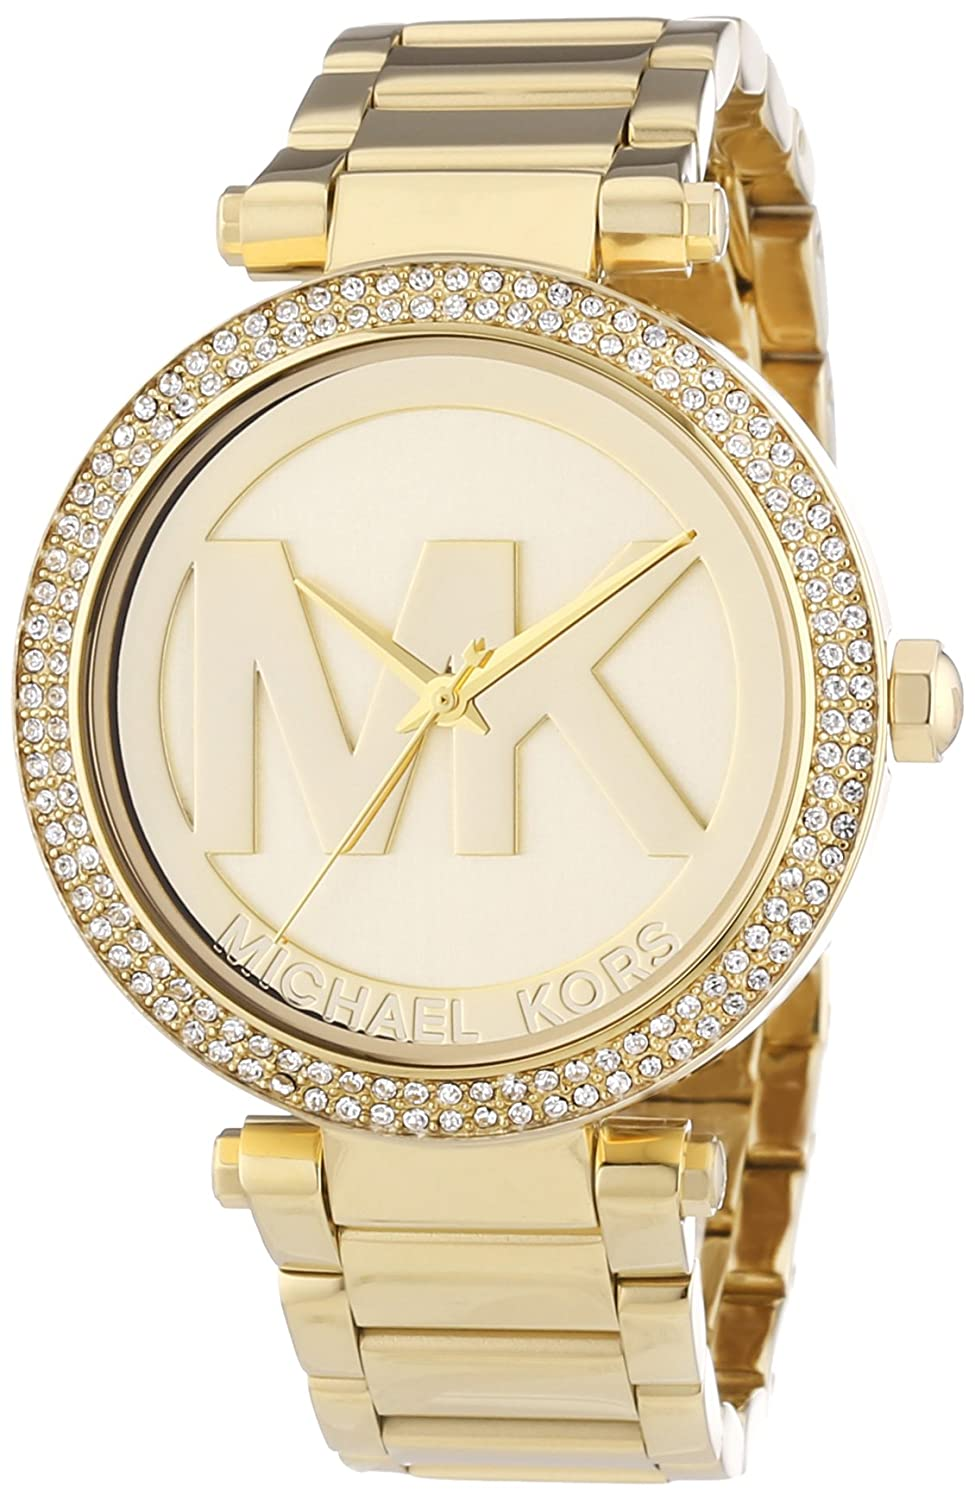 Michael Kors Damen-Armbanduhr Analog Quarz